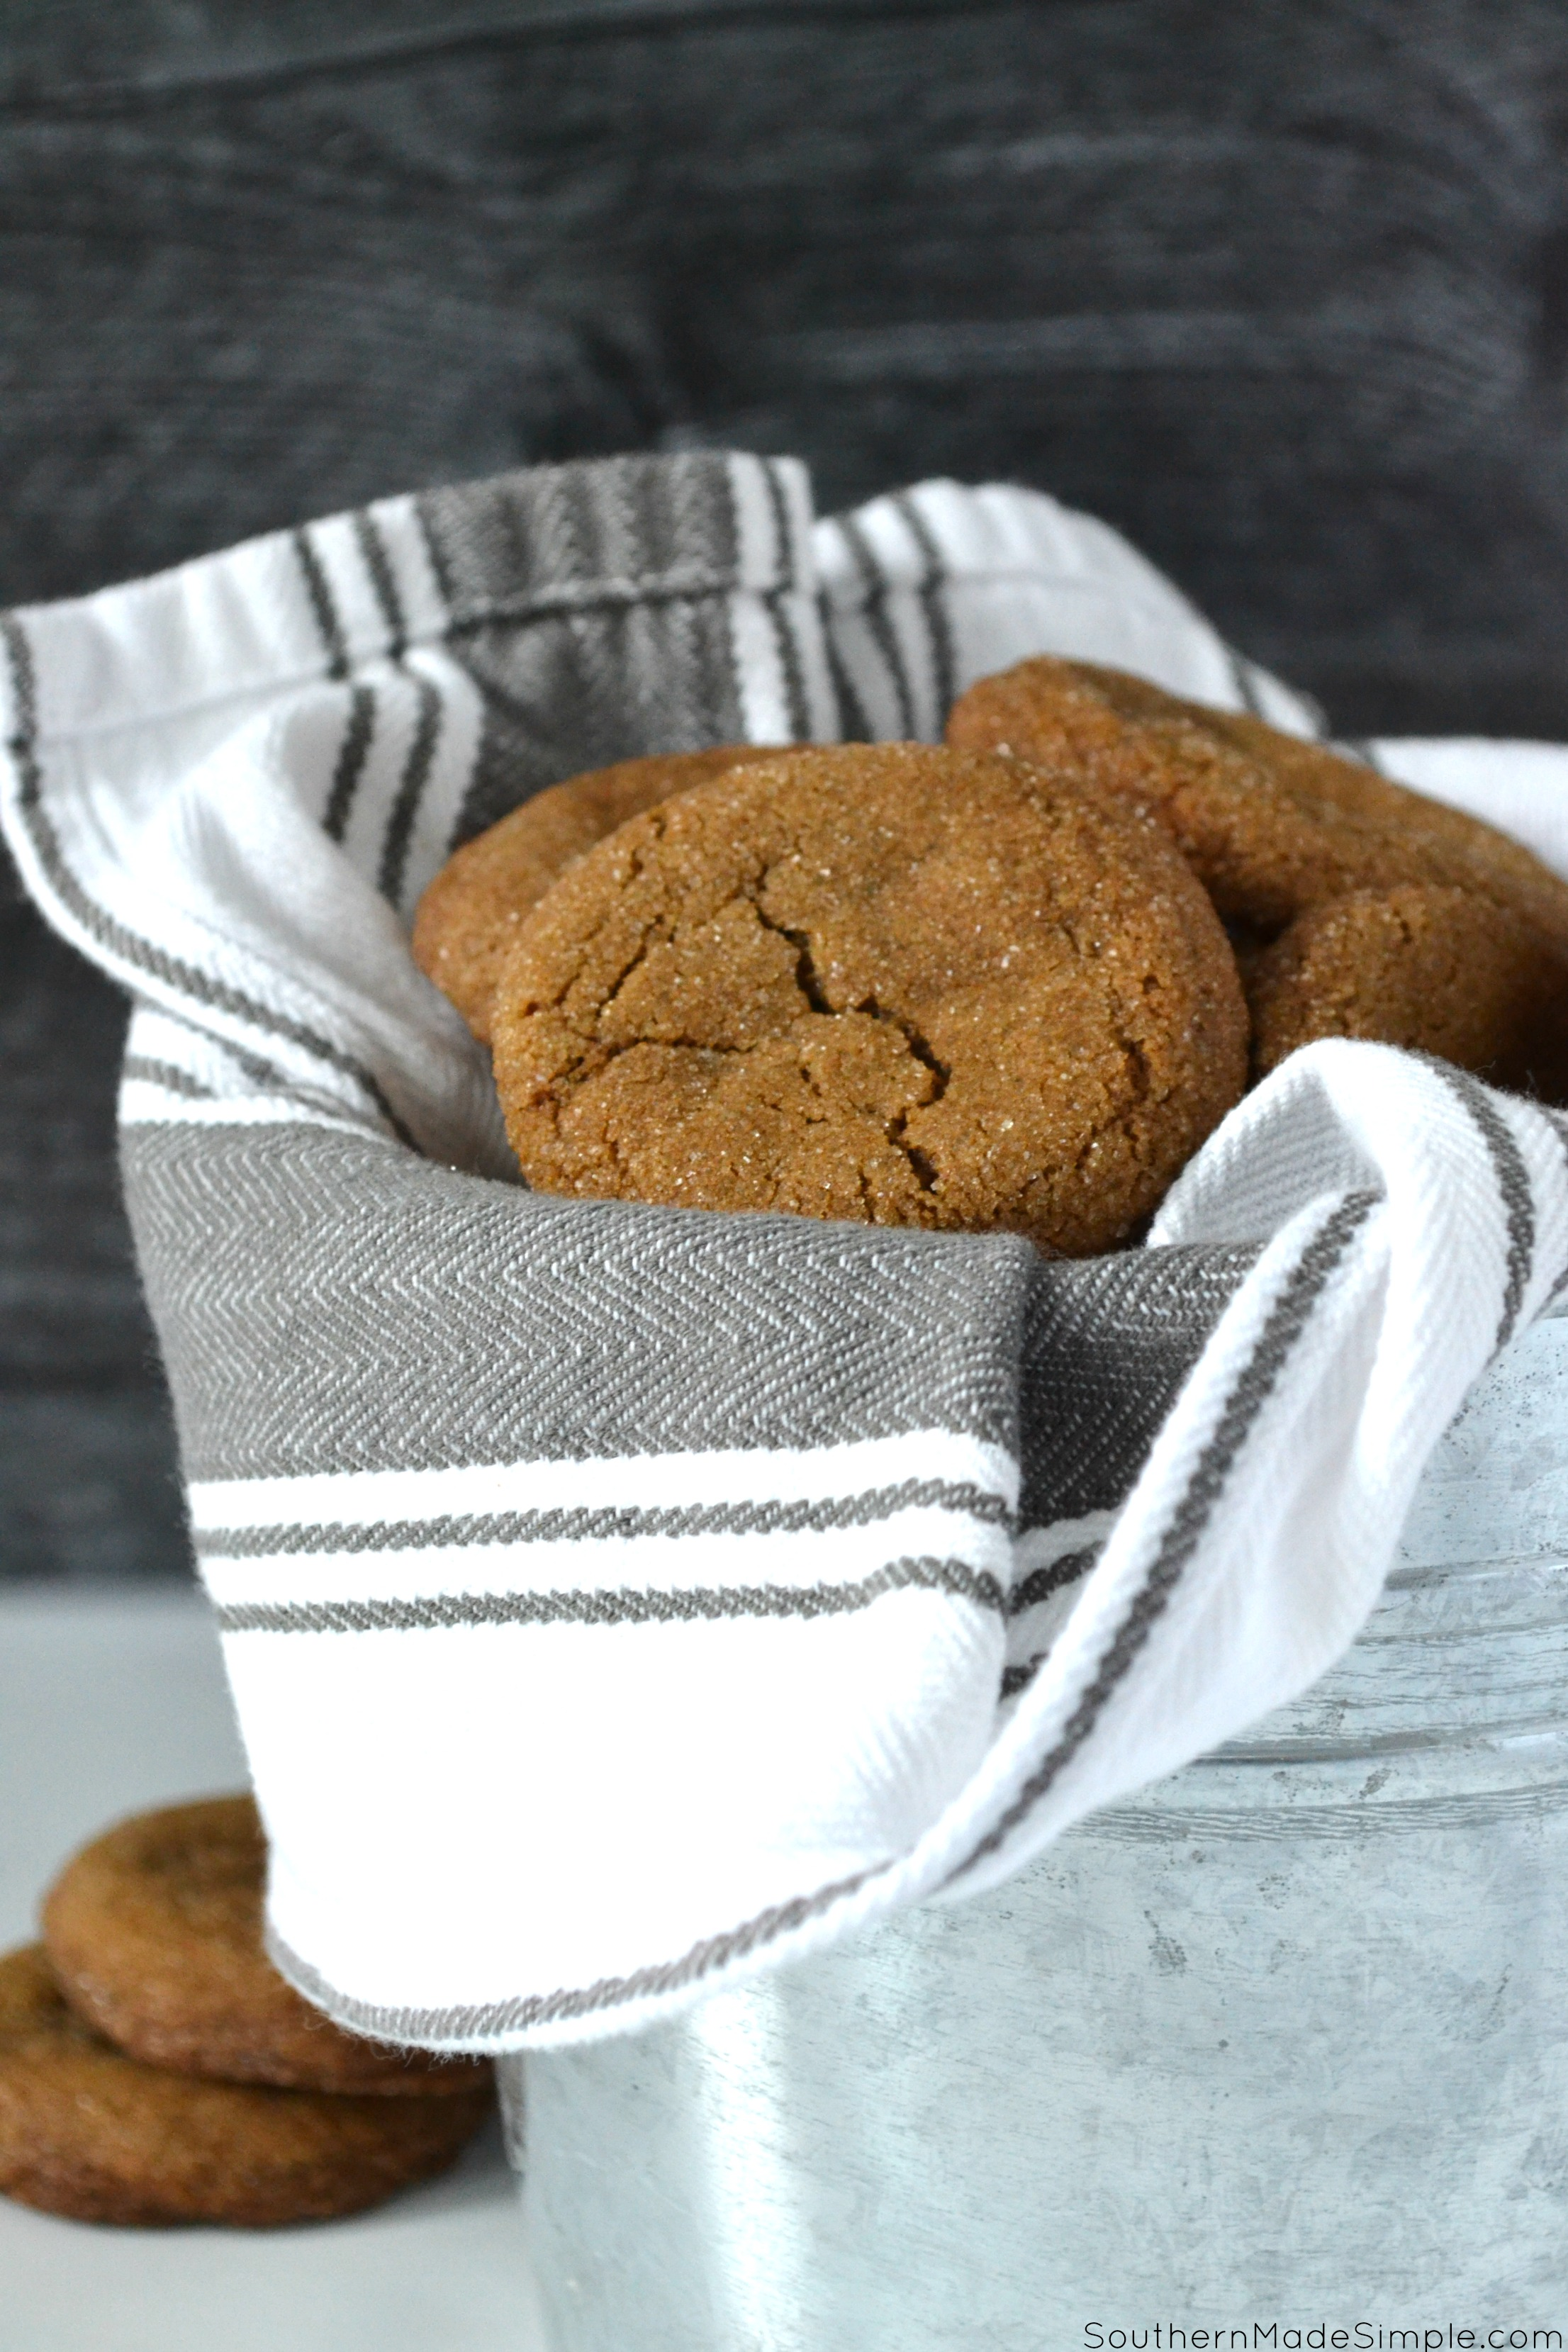 These Molasses Sugar Cookies are crisp on the outside, chewy on the inside and coated in sweet sugar crystals. They make the whole house smell like christmas when they're in the oven, and you definitely can't eat just one! #molassescookies